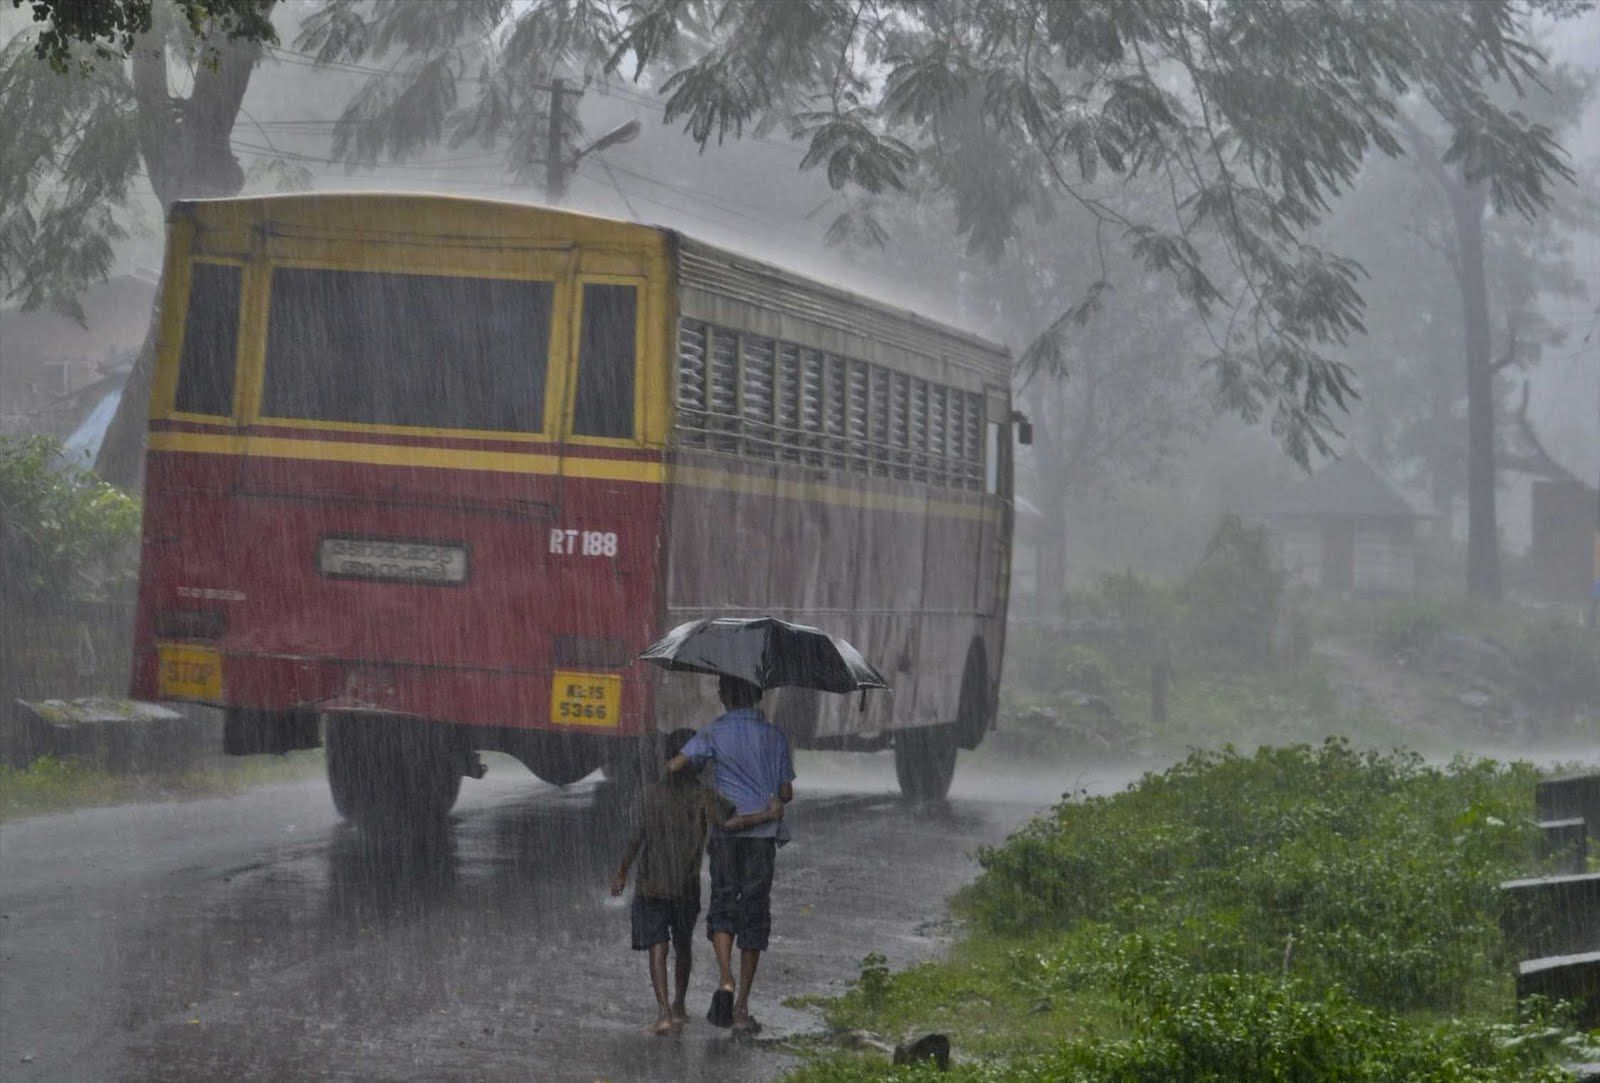 Ksrtc Bus In Rain With Images Rainy Day Images Rain Kerala